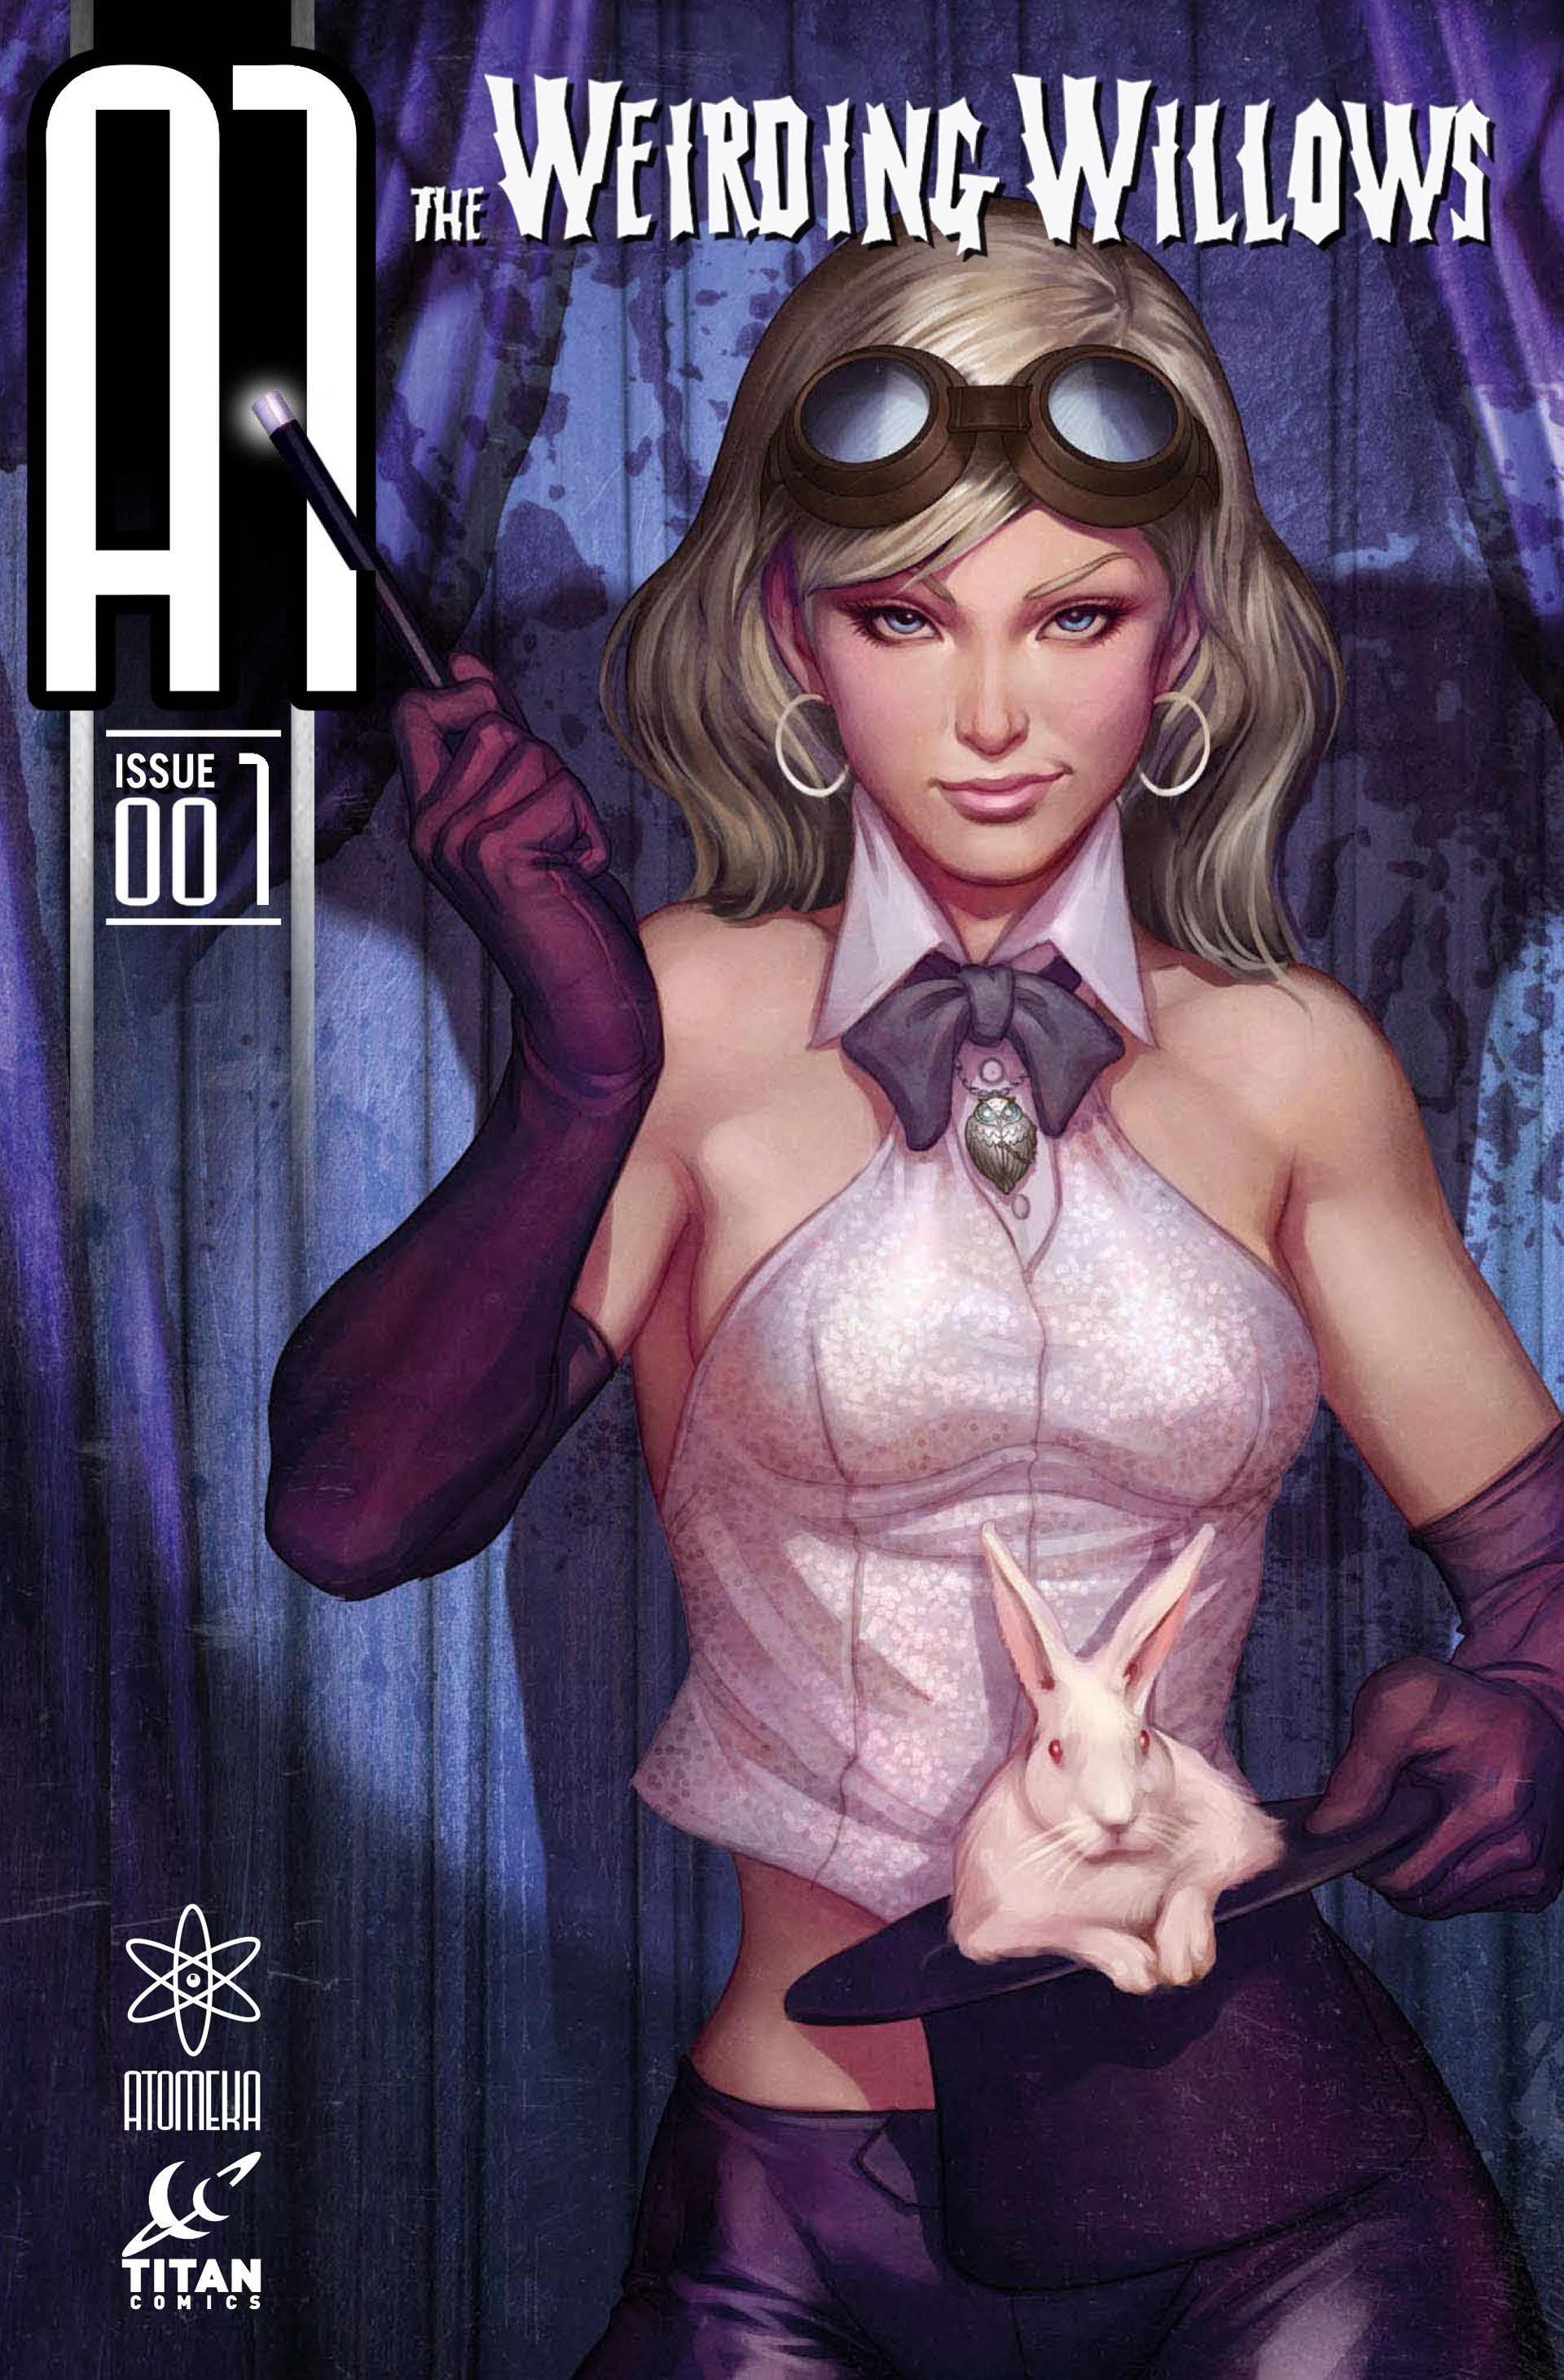 Read online A1 Presents The Weirding Willows comic -  Issue #A1 Presents The Weirding Willows Full - 1